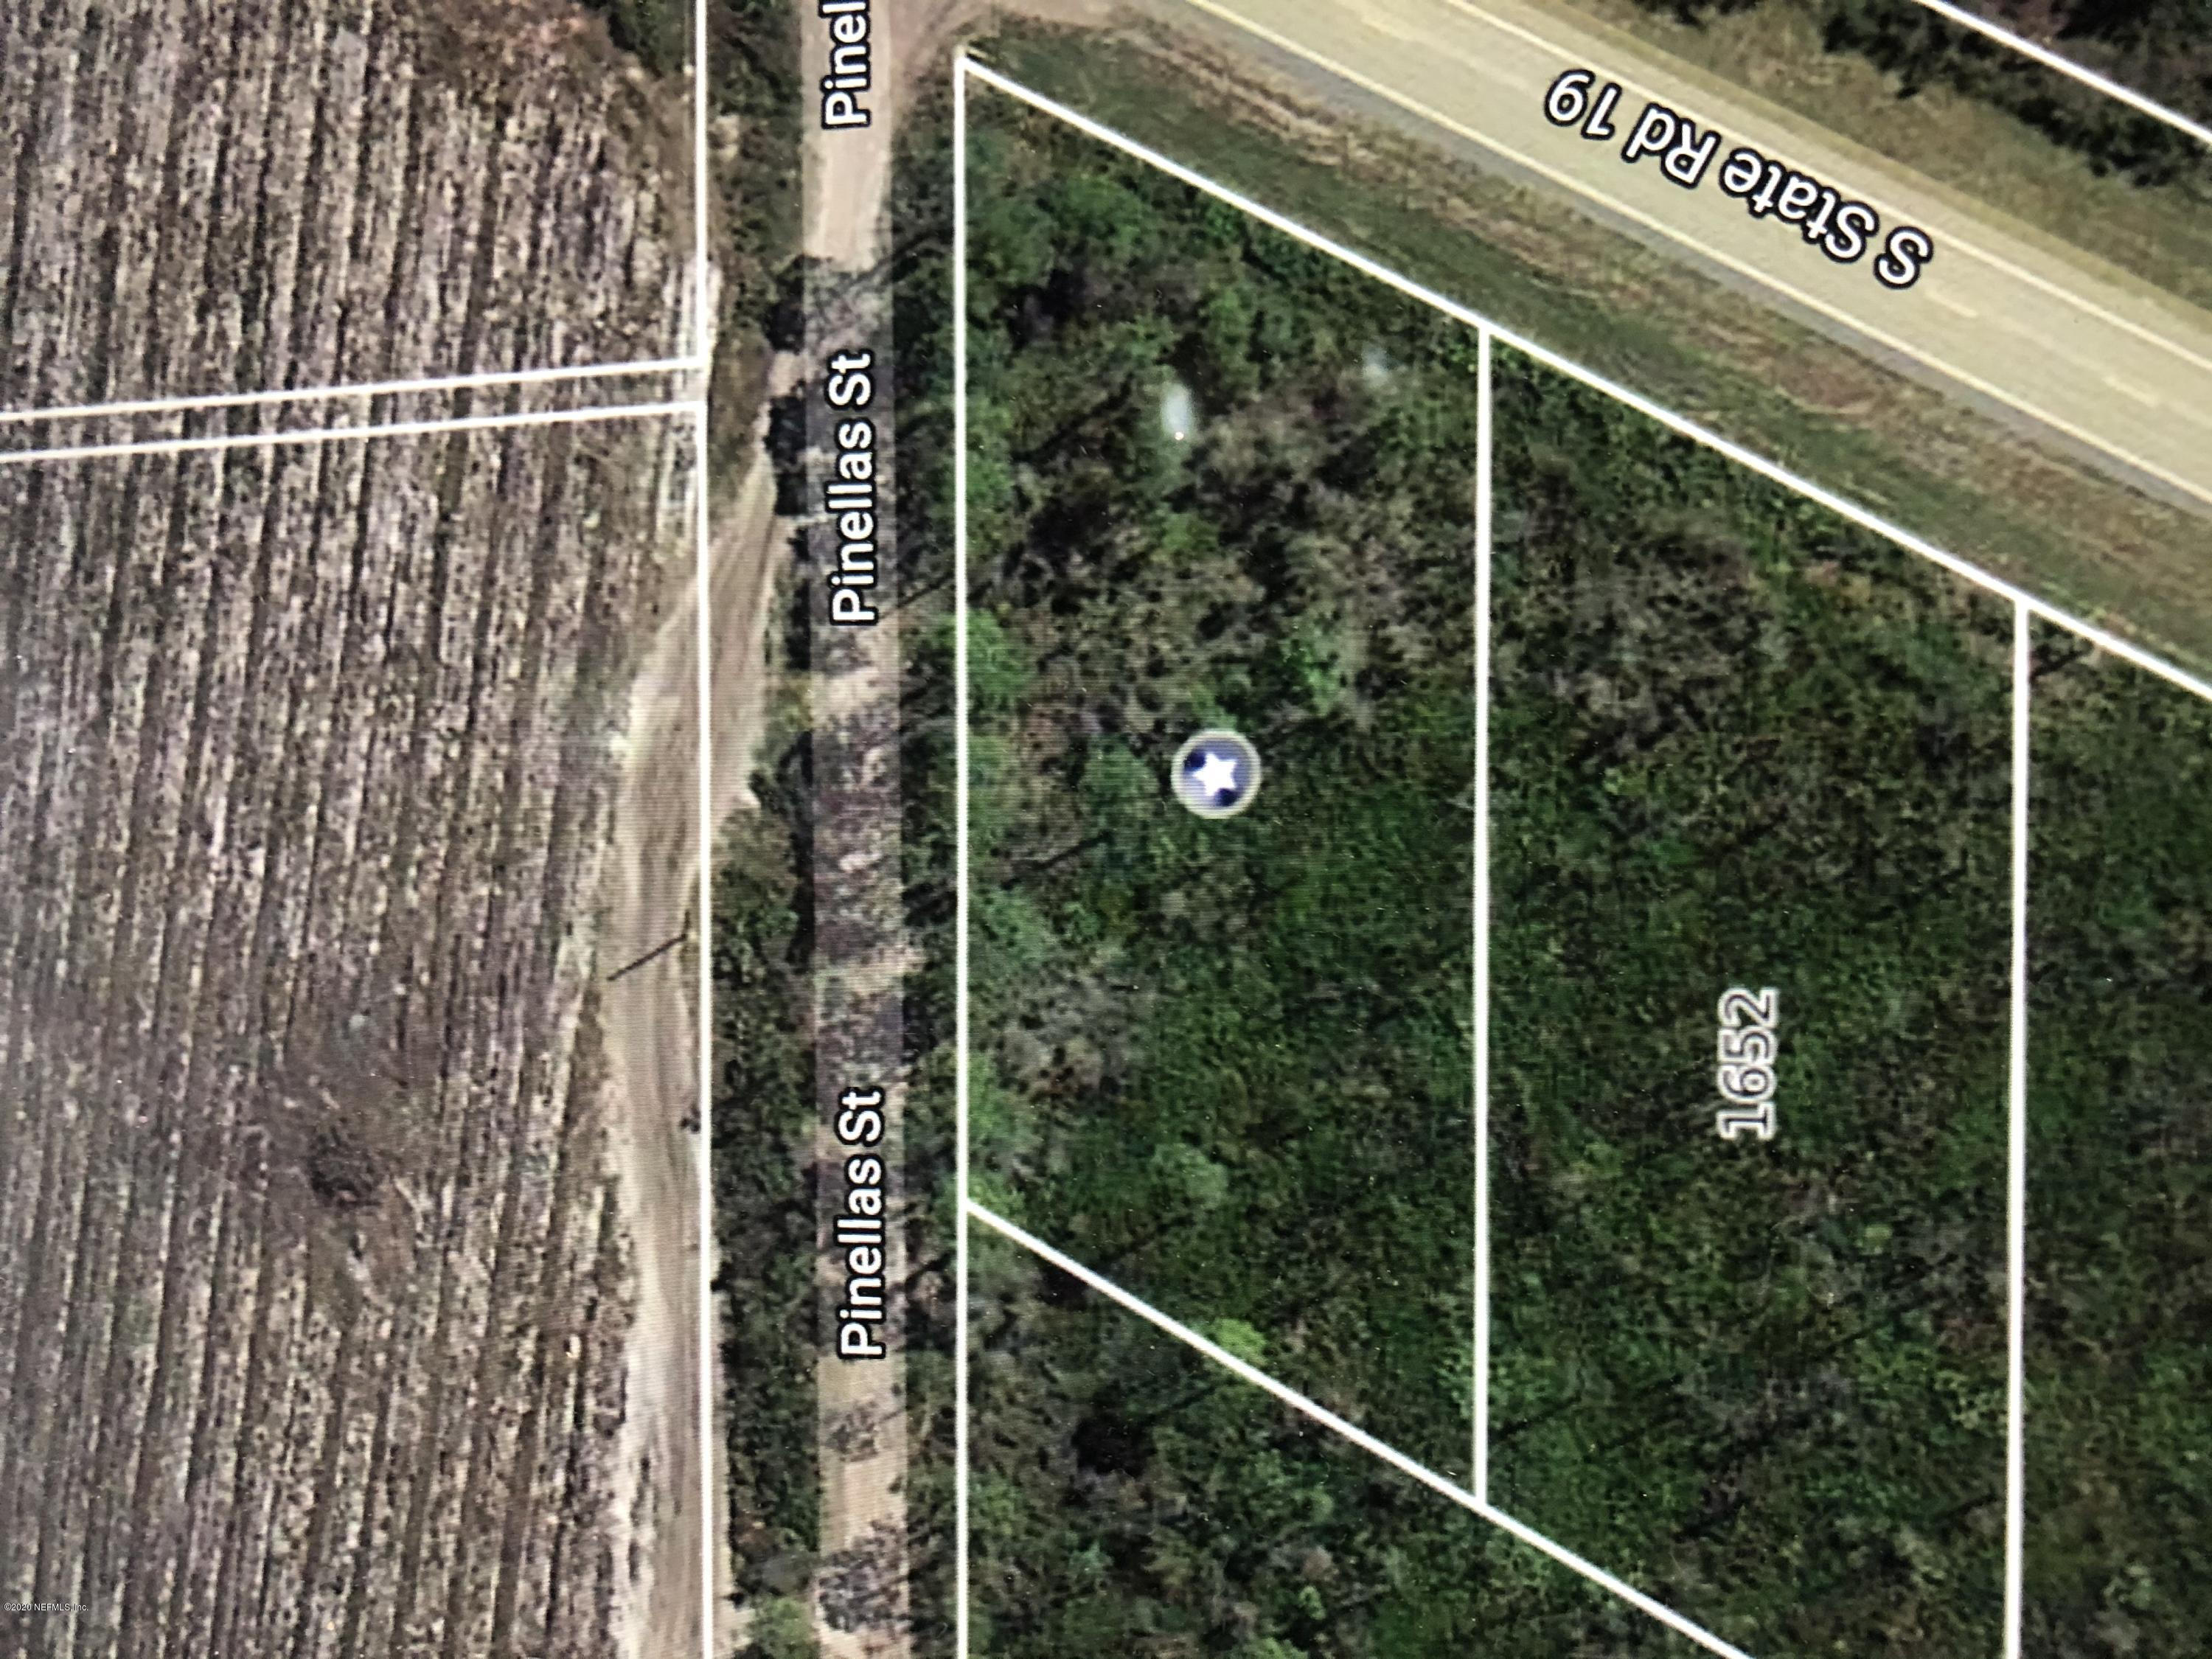 1650 STATE ROAD 19, PALATKA, FLORIDA 32177, ,Vacant land,For sale,STATE ROAD 19,1081143